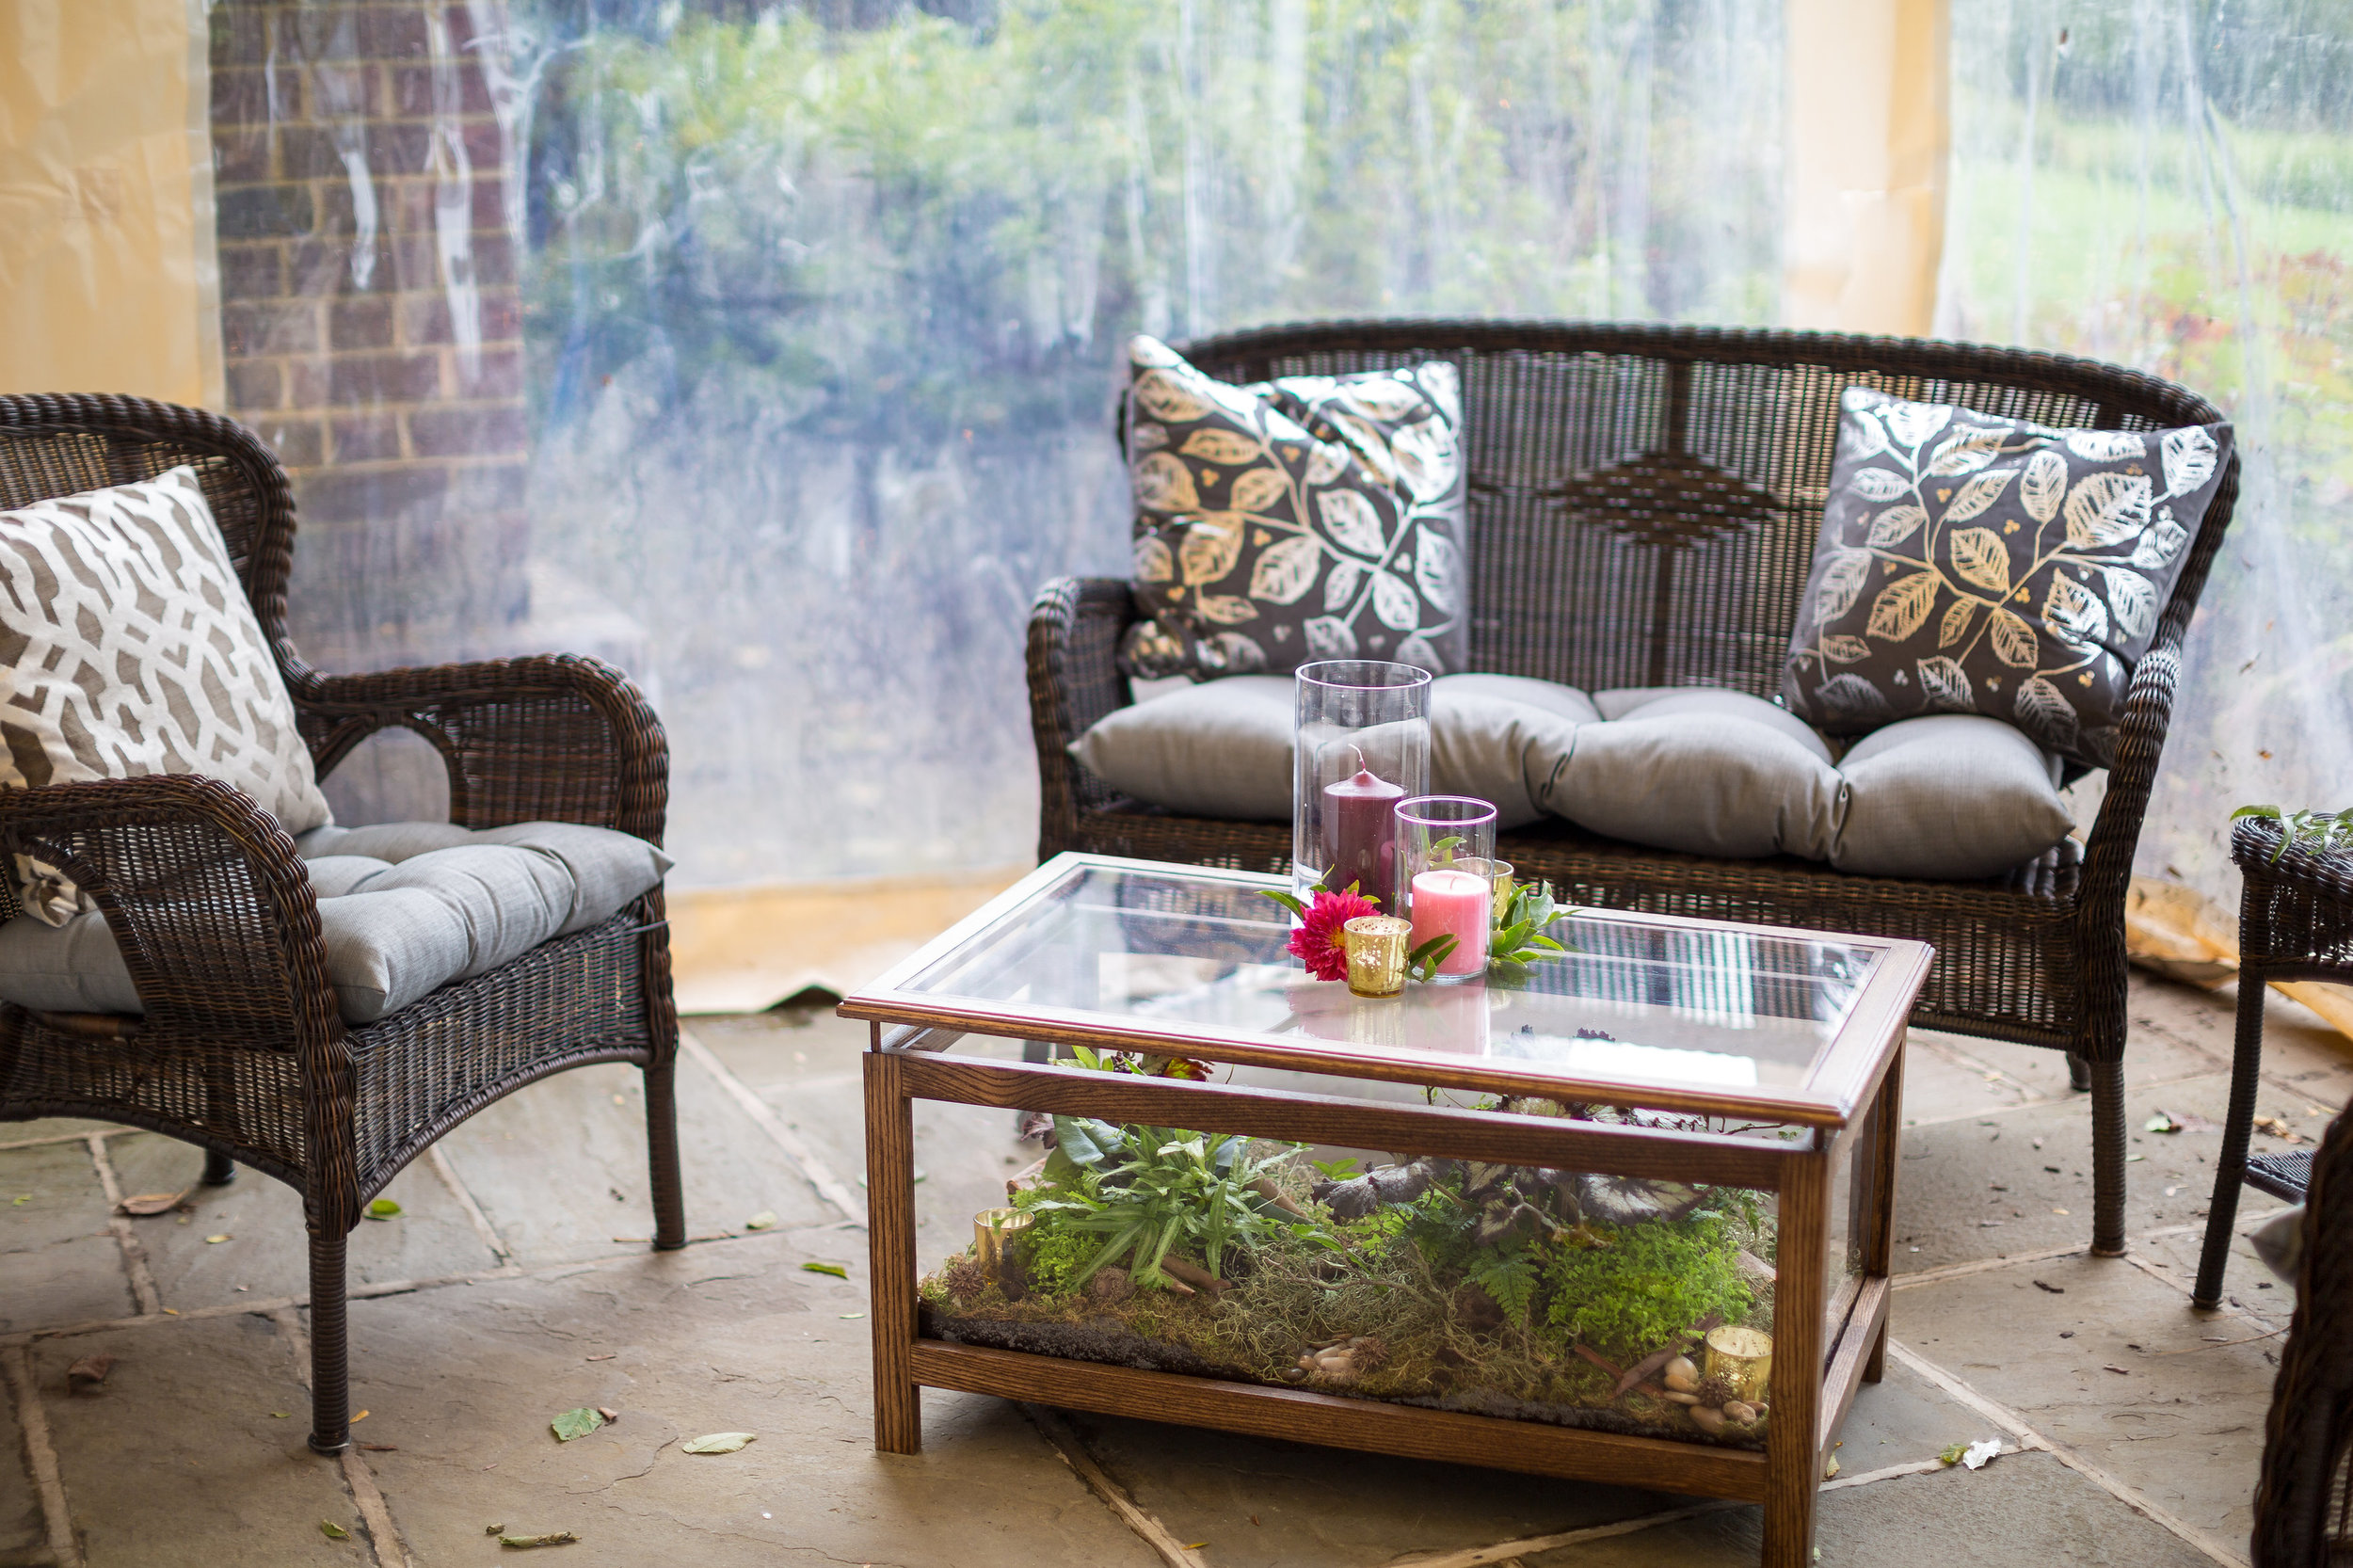 As a tribute to my great-aunt, I had an idea for these terrarium coffee tables which we could use in a lounge area.  Mary took my request to heart, and put together 3 different lounge areas with 2 of the coffee tables!  Guests occupied these spaces all night, and it really enhanced my open seating theme.